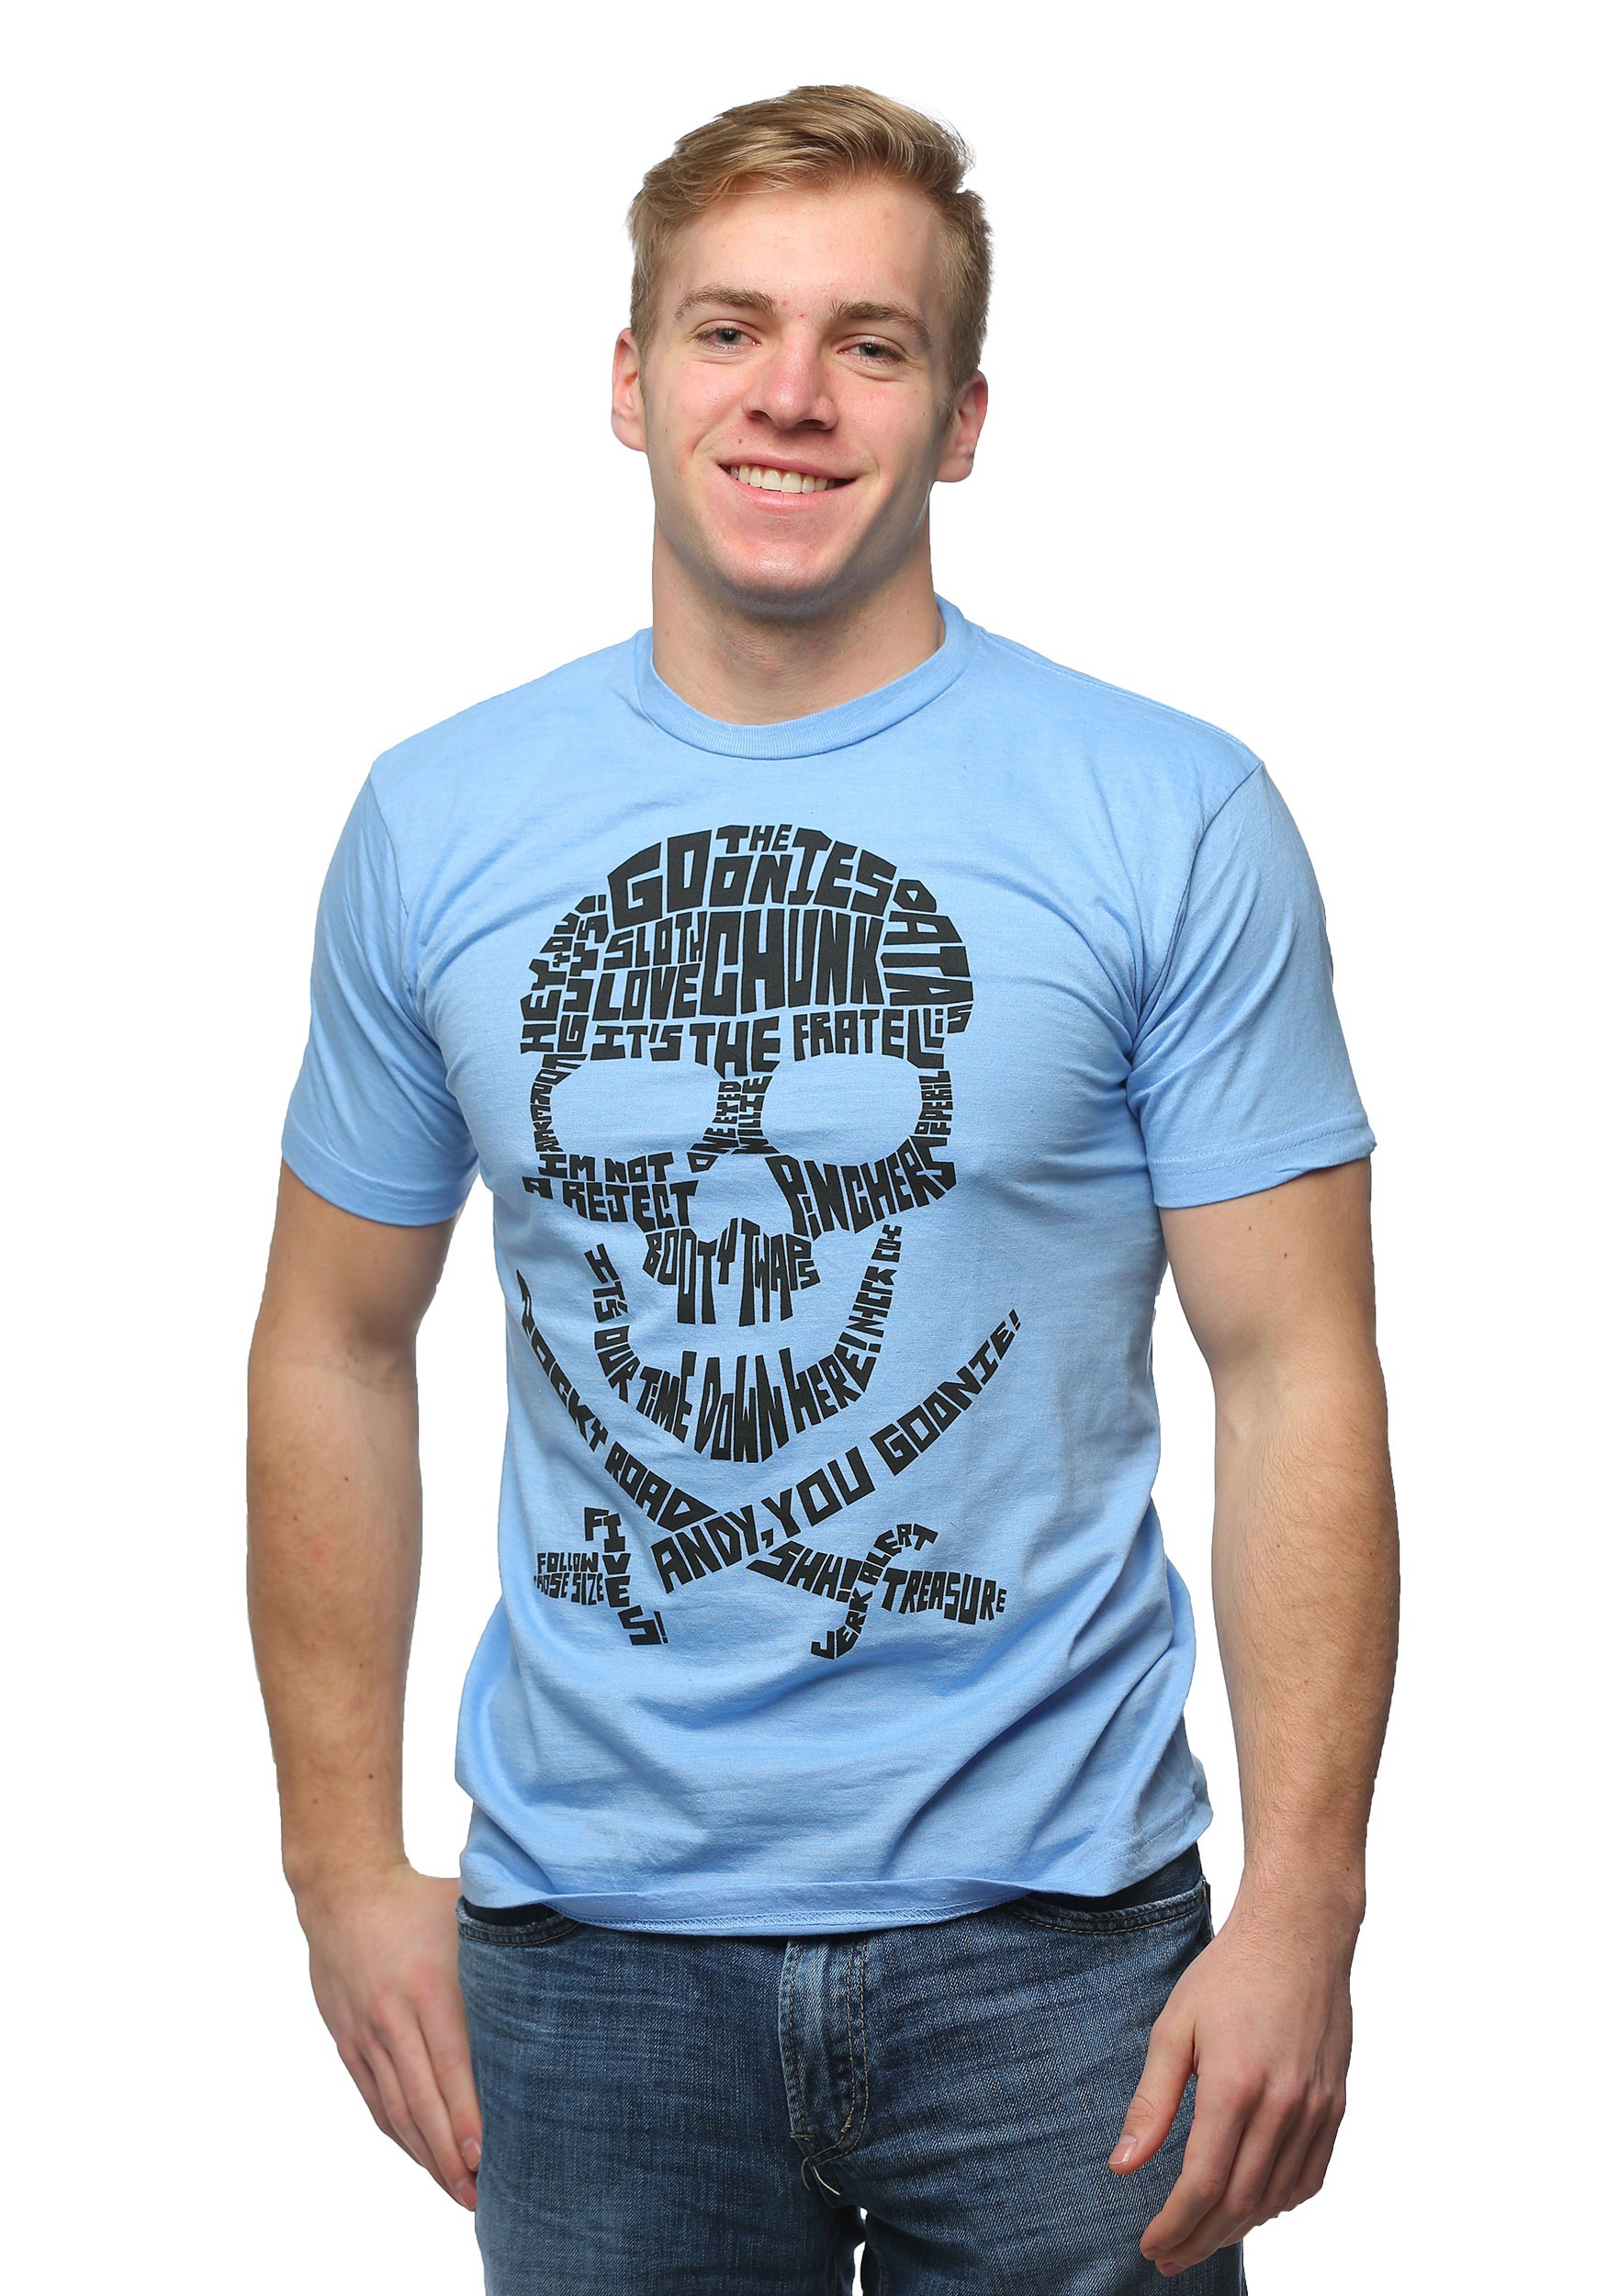 Goonies quote skull light blue t shirt for men Light blue t shirt mens